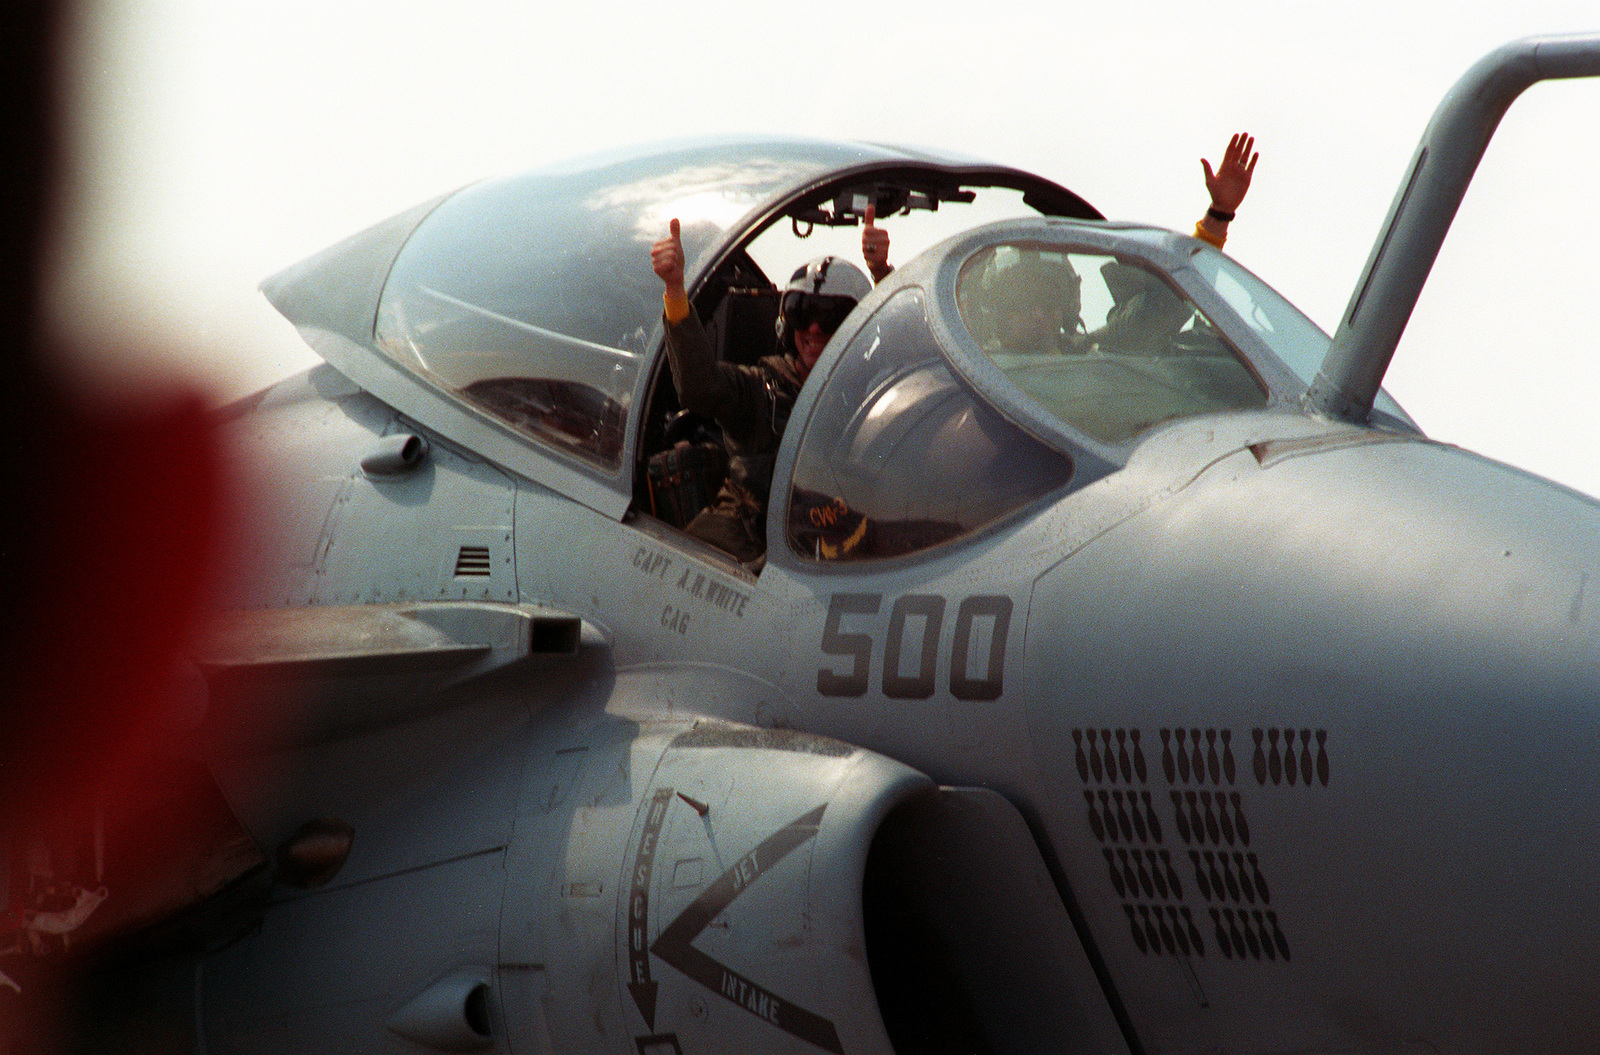 CAPT. A. Hardin White, the commander of Carrier Air wing 3 (CVW-3), waves from the bombardier-navigator's seat of an Attack Squadron 75 (VA-75) A-6E Intruder aircraft upon his arrival at the air station. VA-75 and the two fighter squadrons of CVW-3 are returning to Oceana following their deployment to the Persian Gulf region aboard the aircraft carrier USS JOHN F. KENNEDY (CV-67) for Operation Desert Shield and Operation Desert Storm